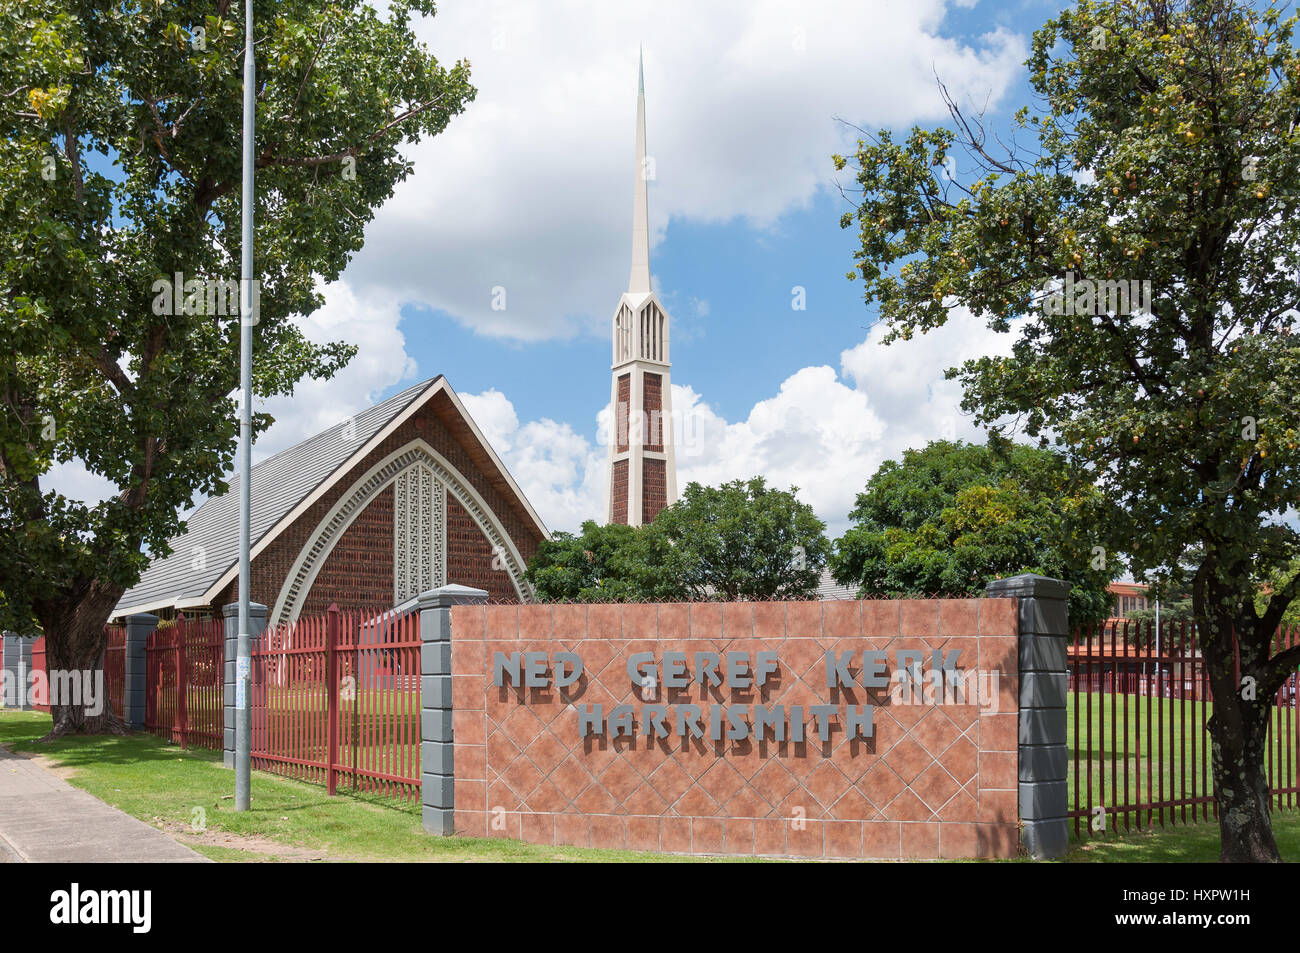 Ned Geref Kirk (Afrikaans Reformed Church), Joost Street, Harrismith, Free State Province, Republic of South Africa - Stock Image